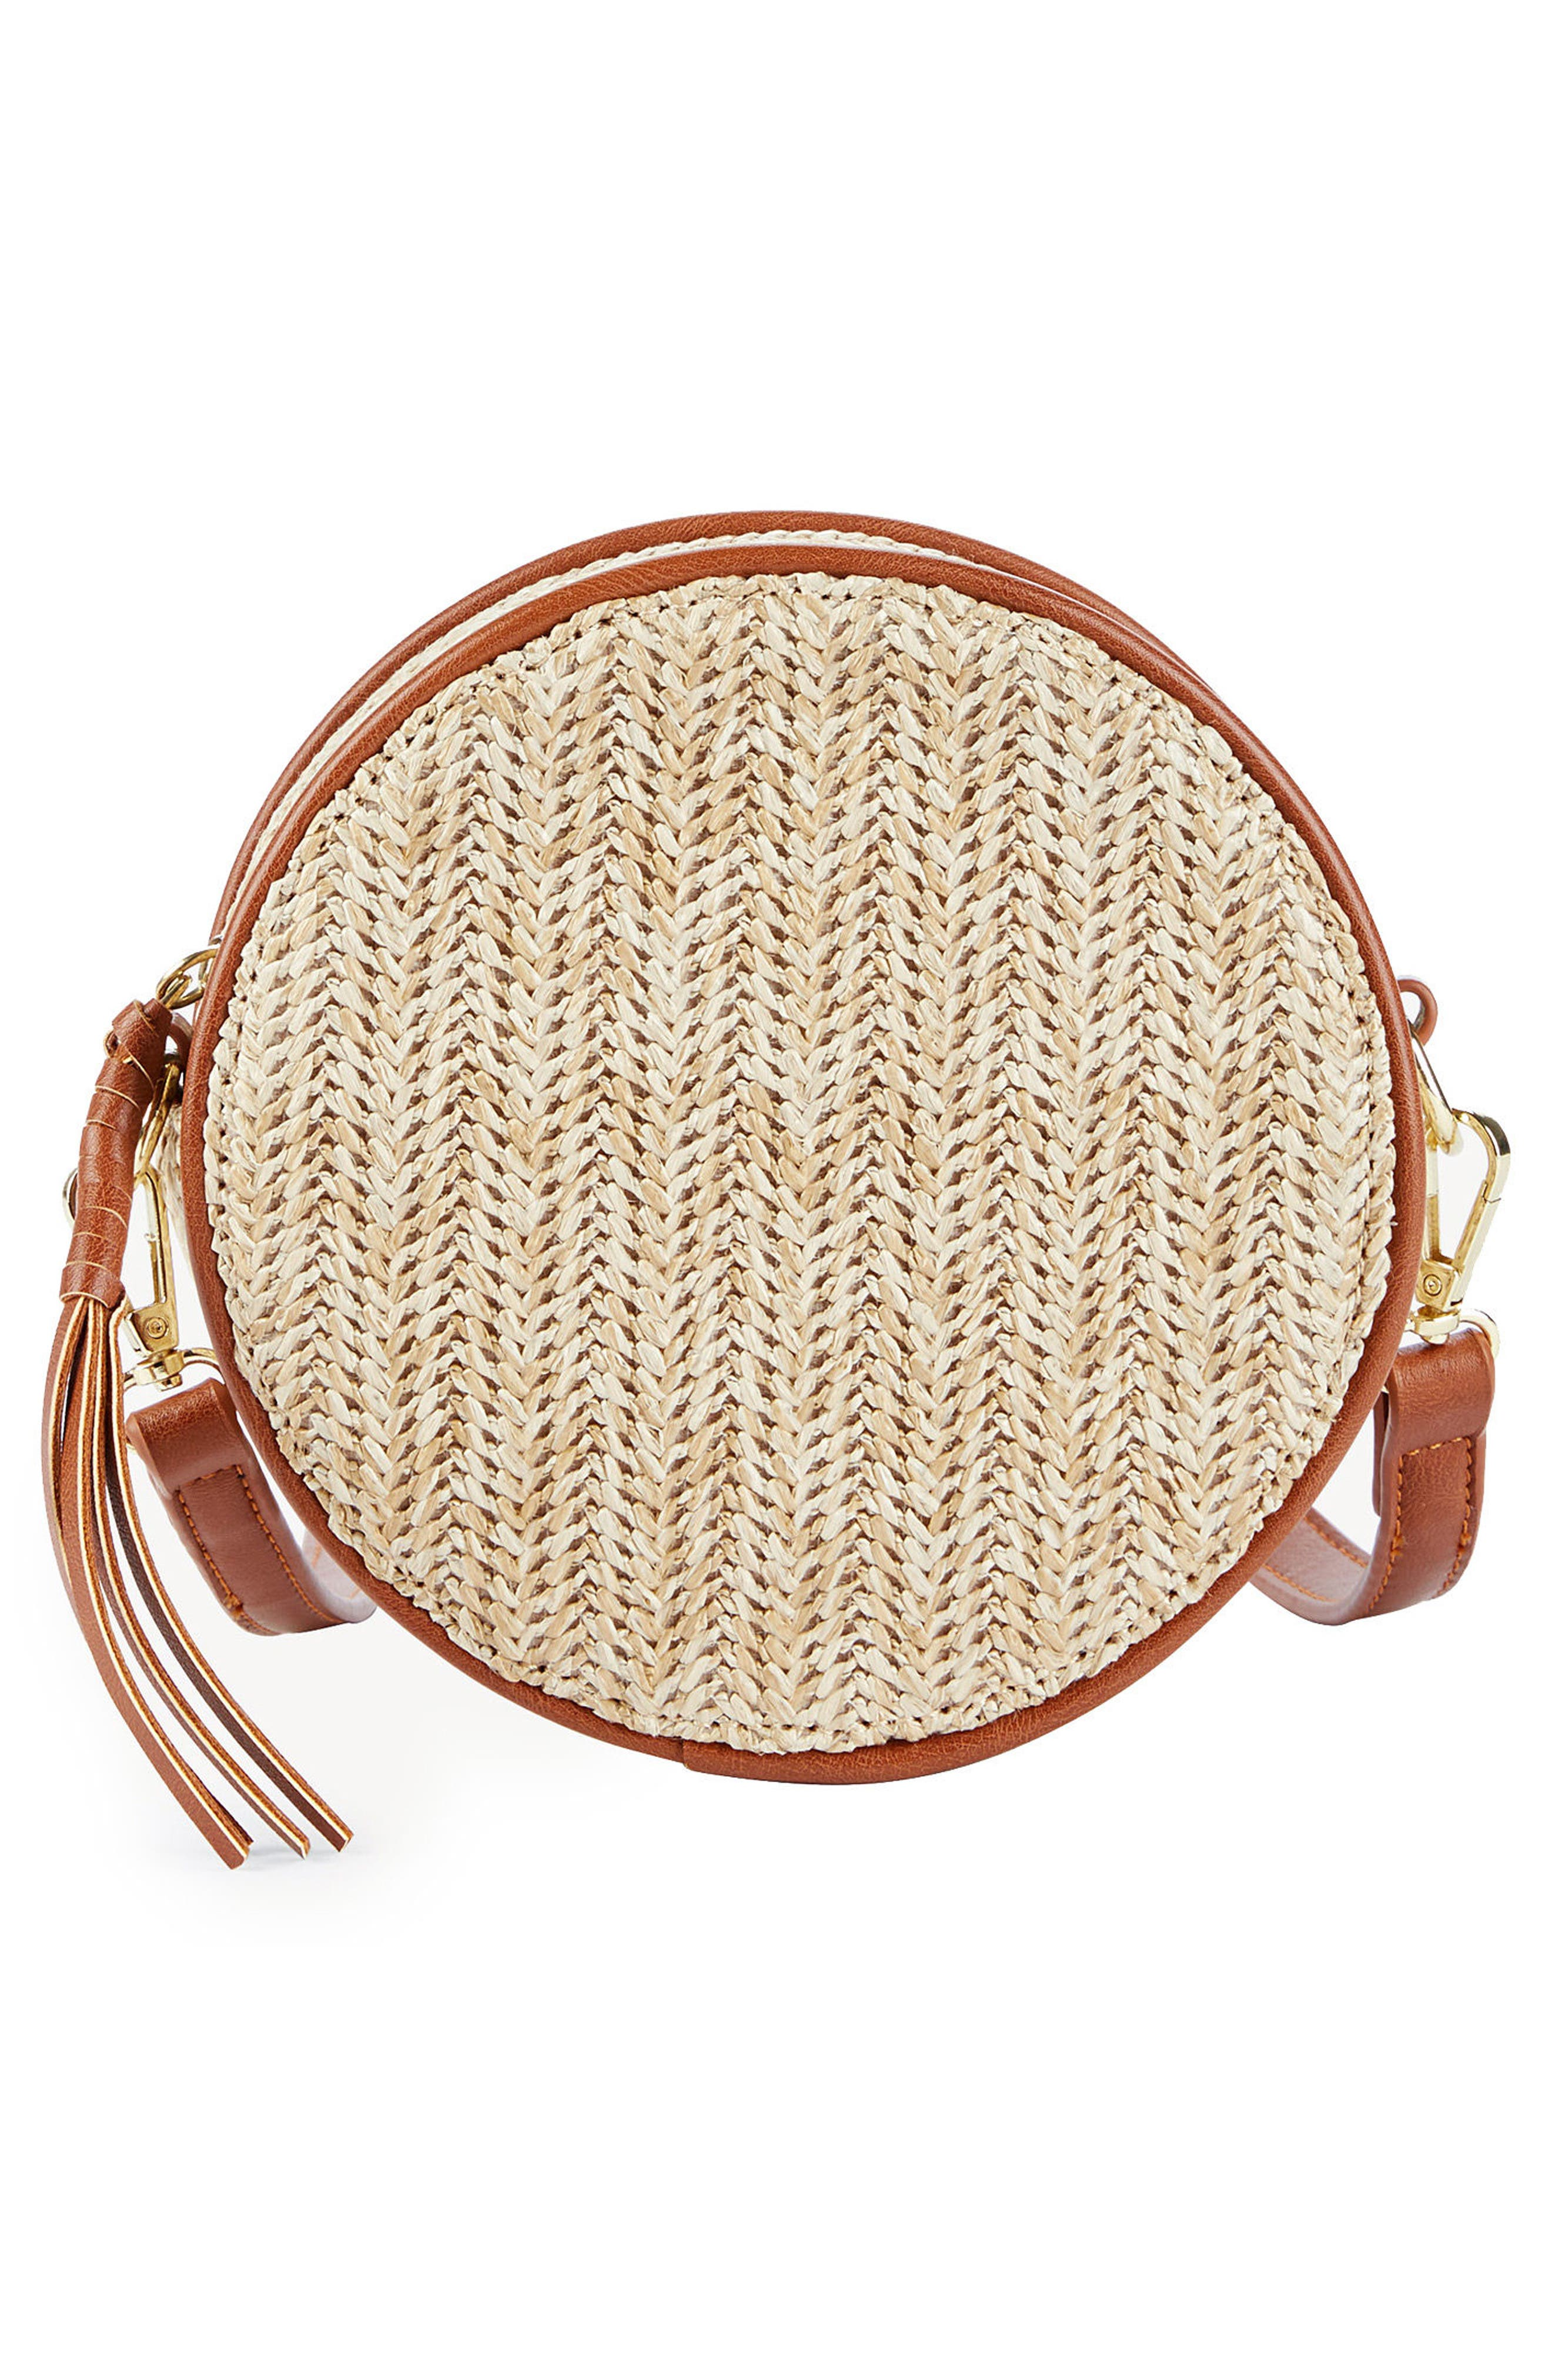 Pipper Small Faux Leather Crossbody Bag,                             Alternate thumbnail 3, color,                             250